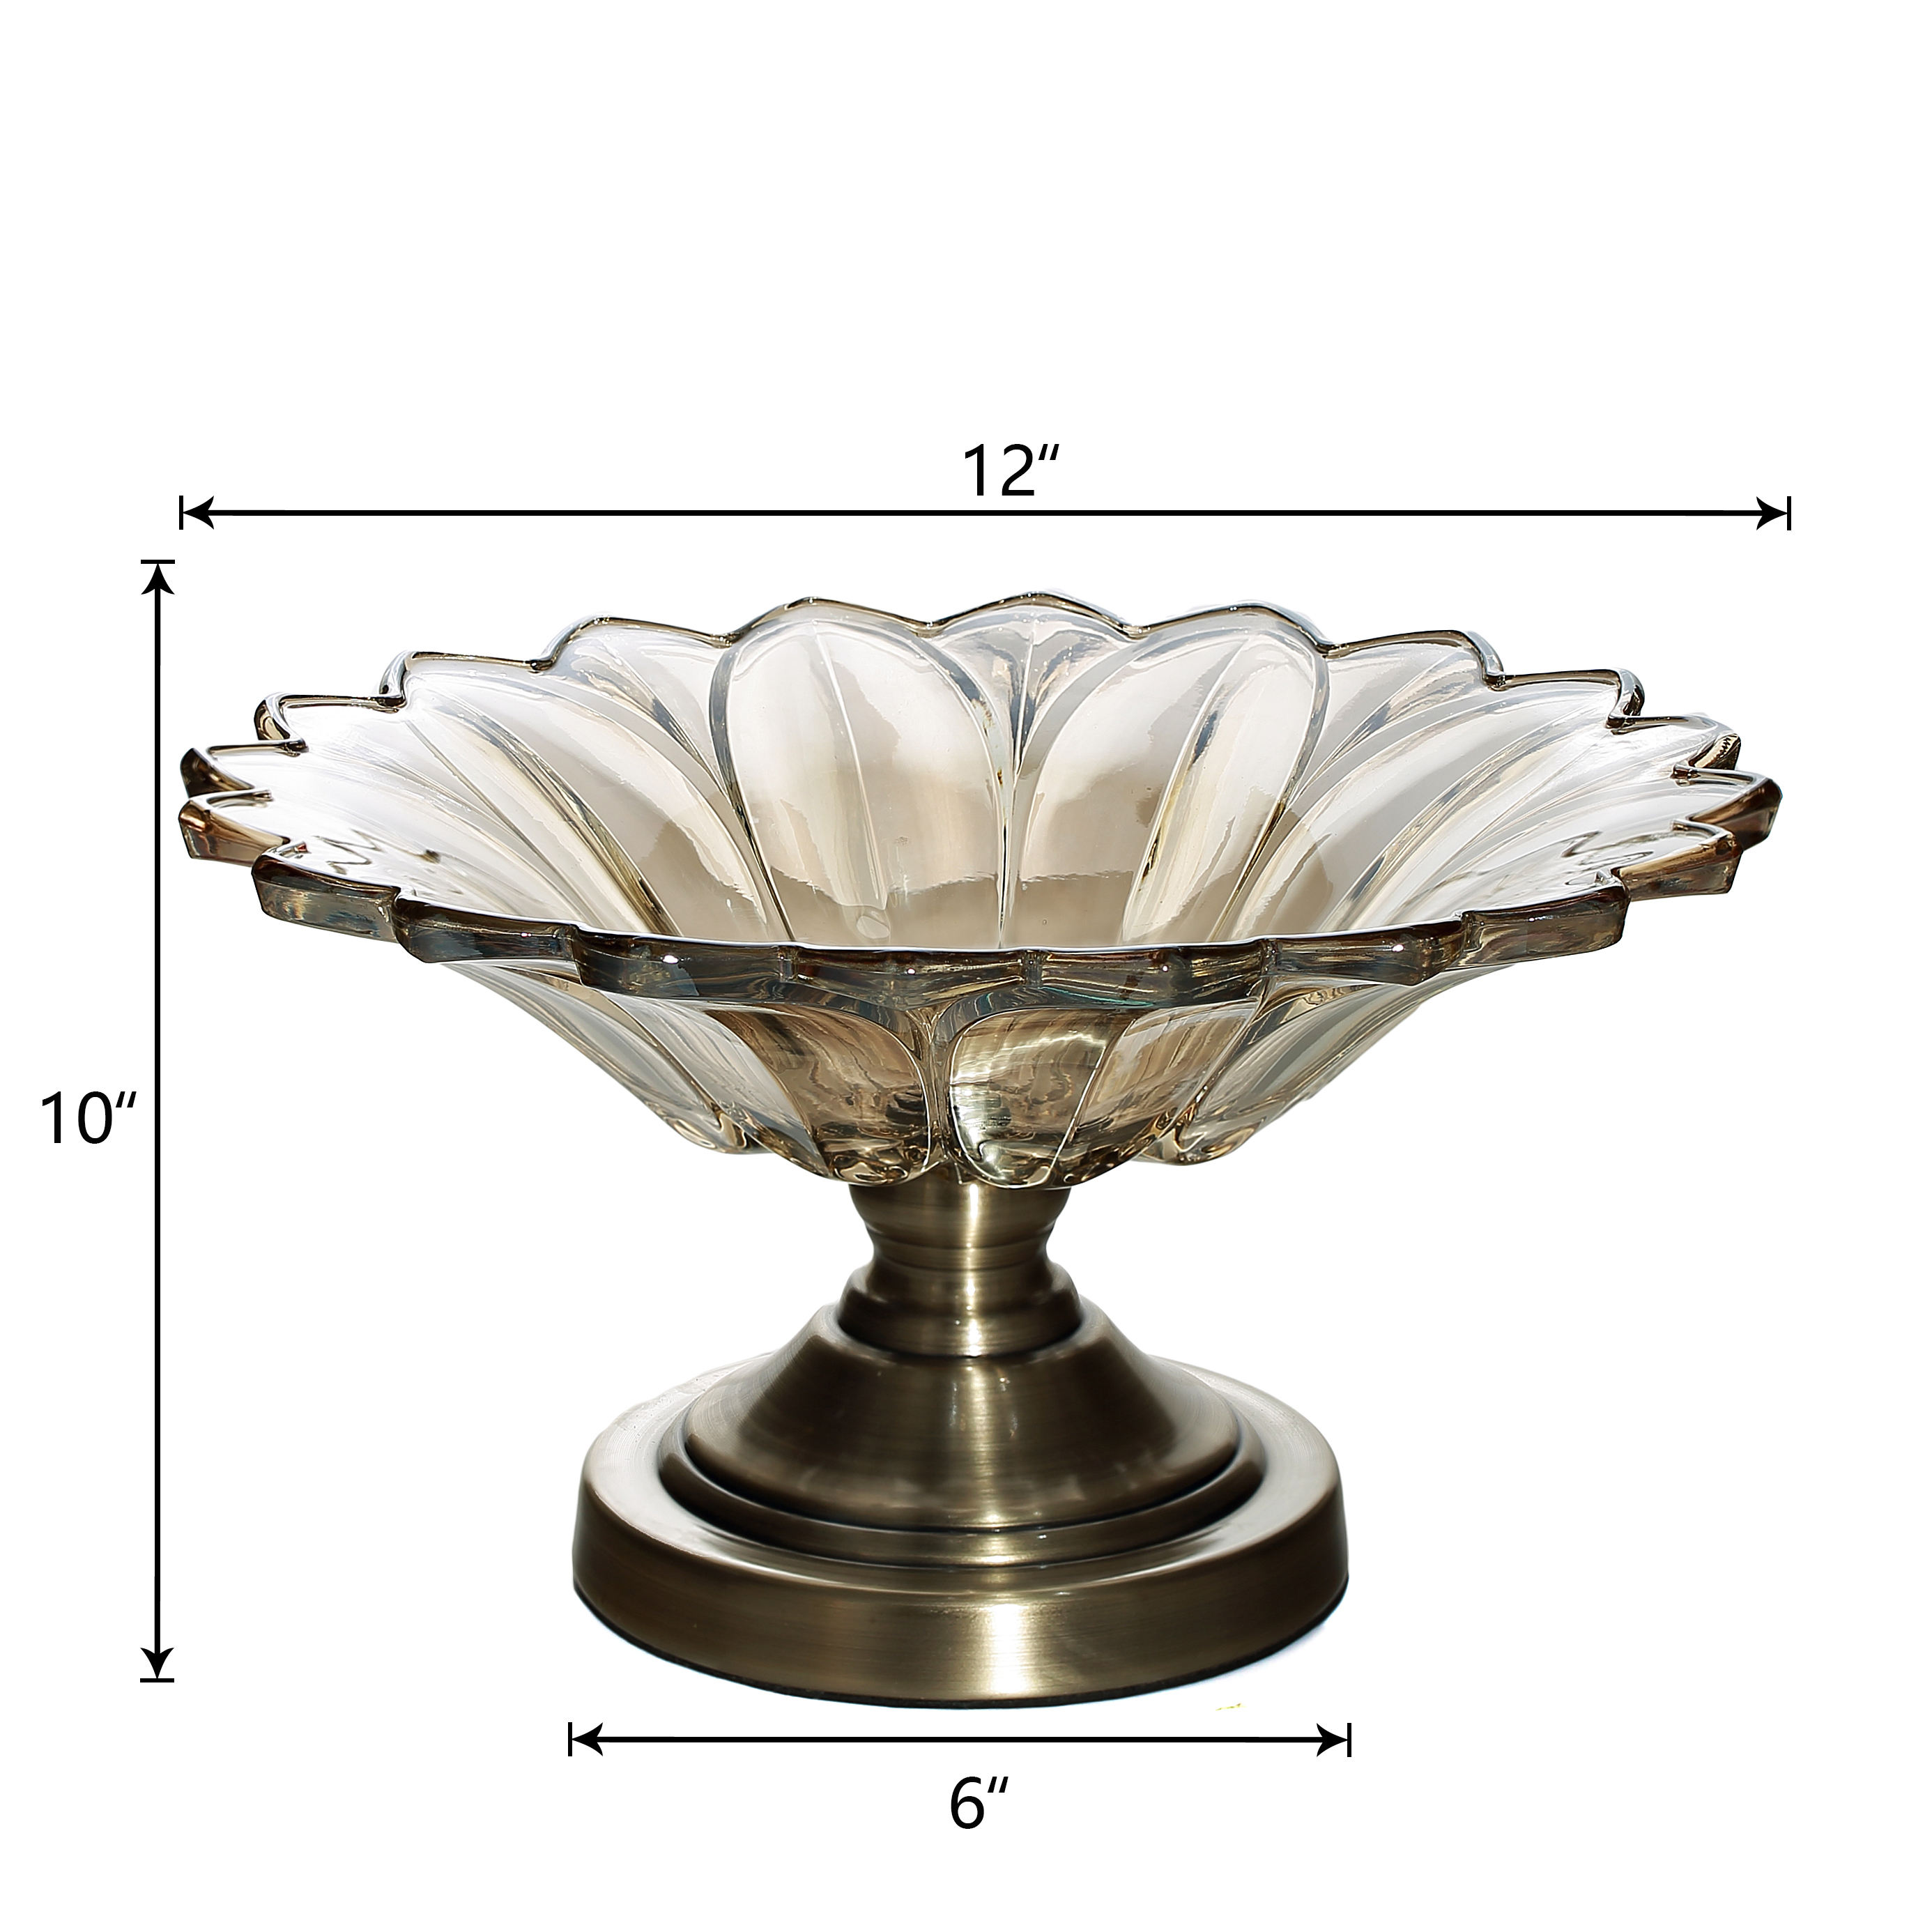 Centerpiece Footed Compote Glass Pedestal Bowl Decorative Fruit Display Stand Vase Candy Dish for Home Party Wedding